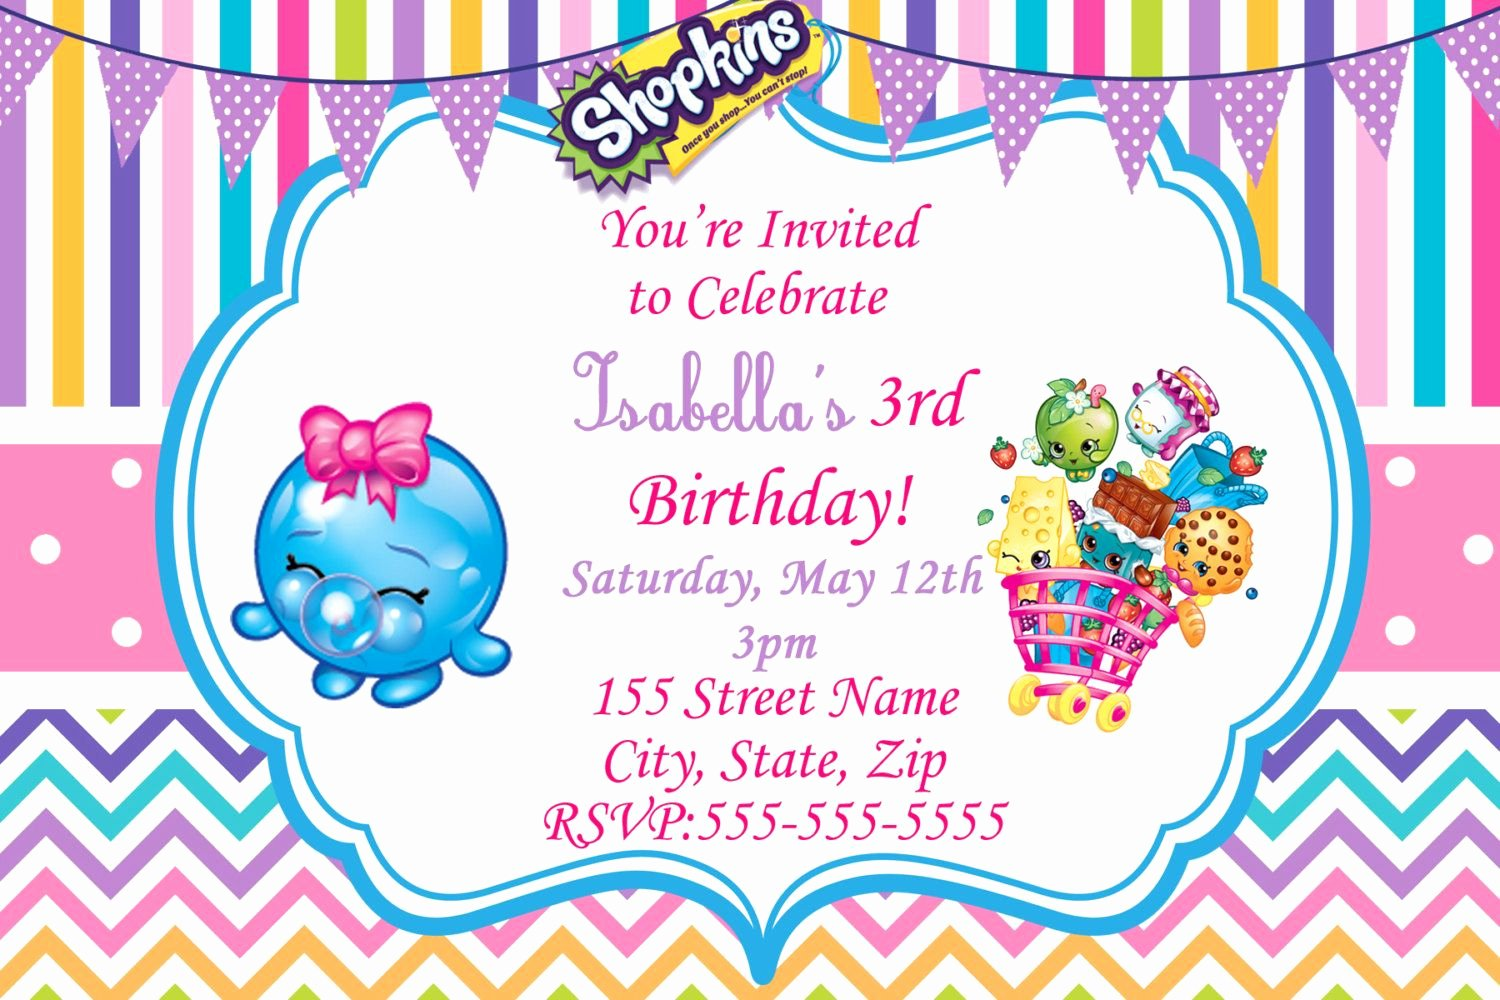 Shopkins Invitations Template Free Beautiful Shopkins Invitations Free Google Search